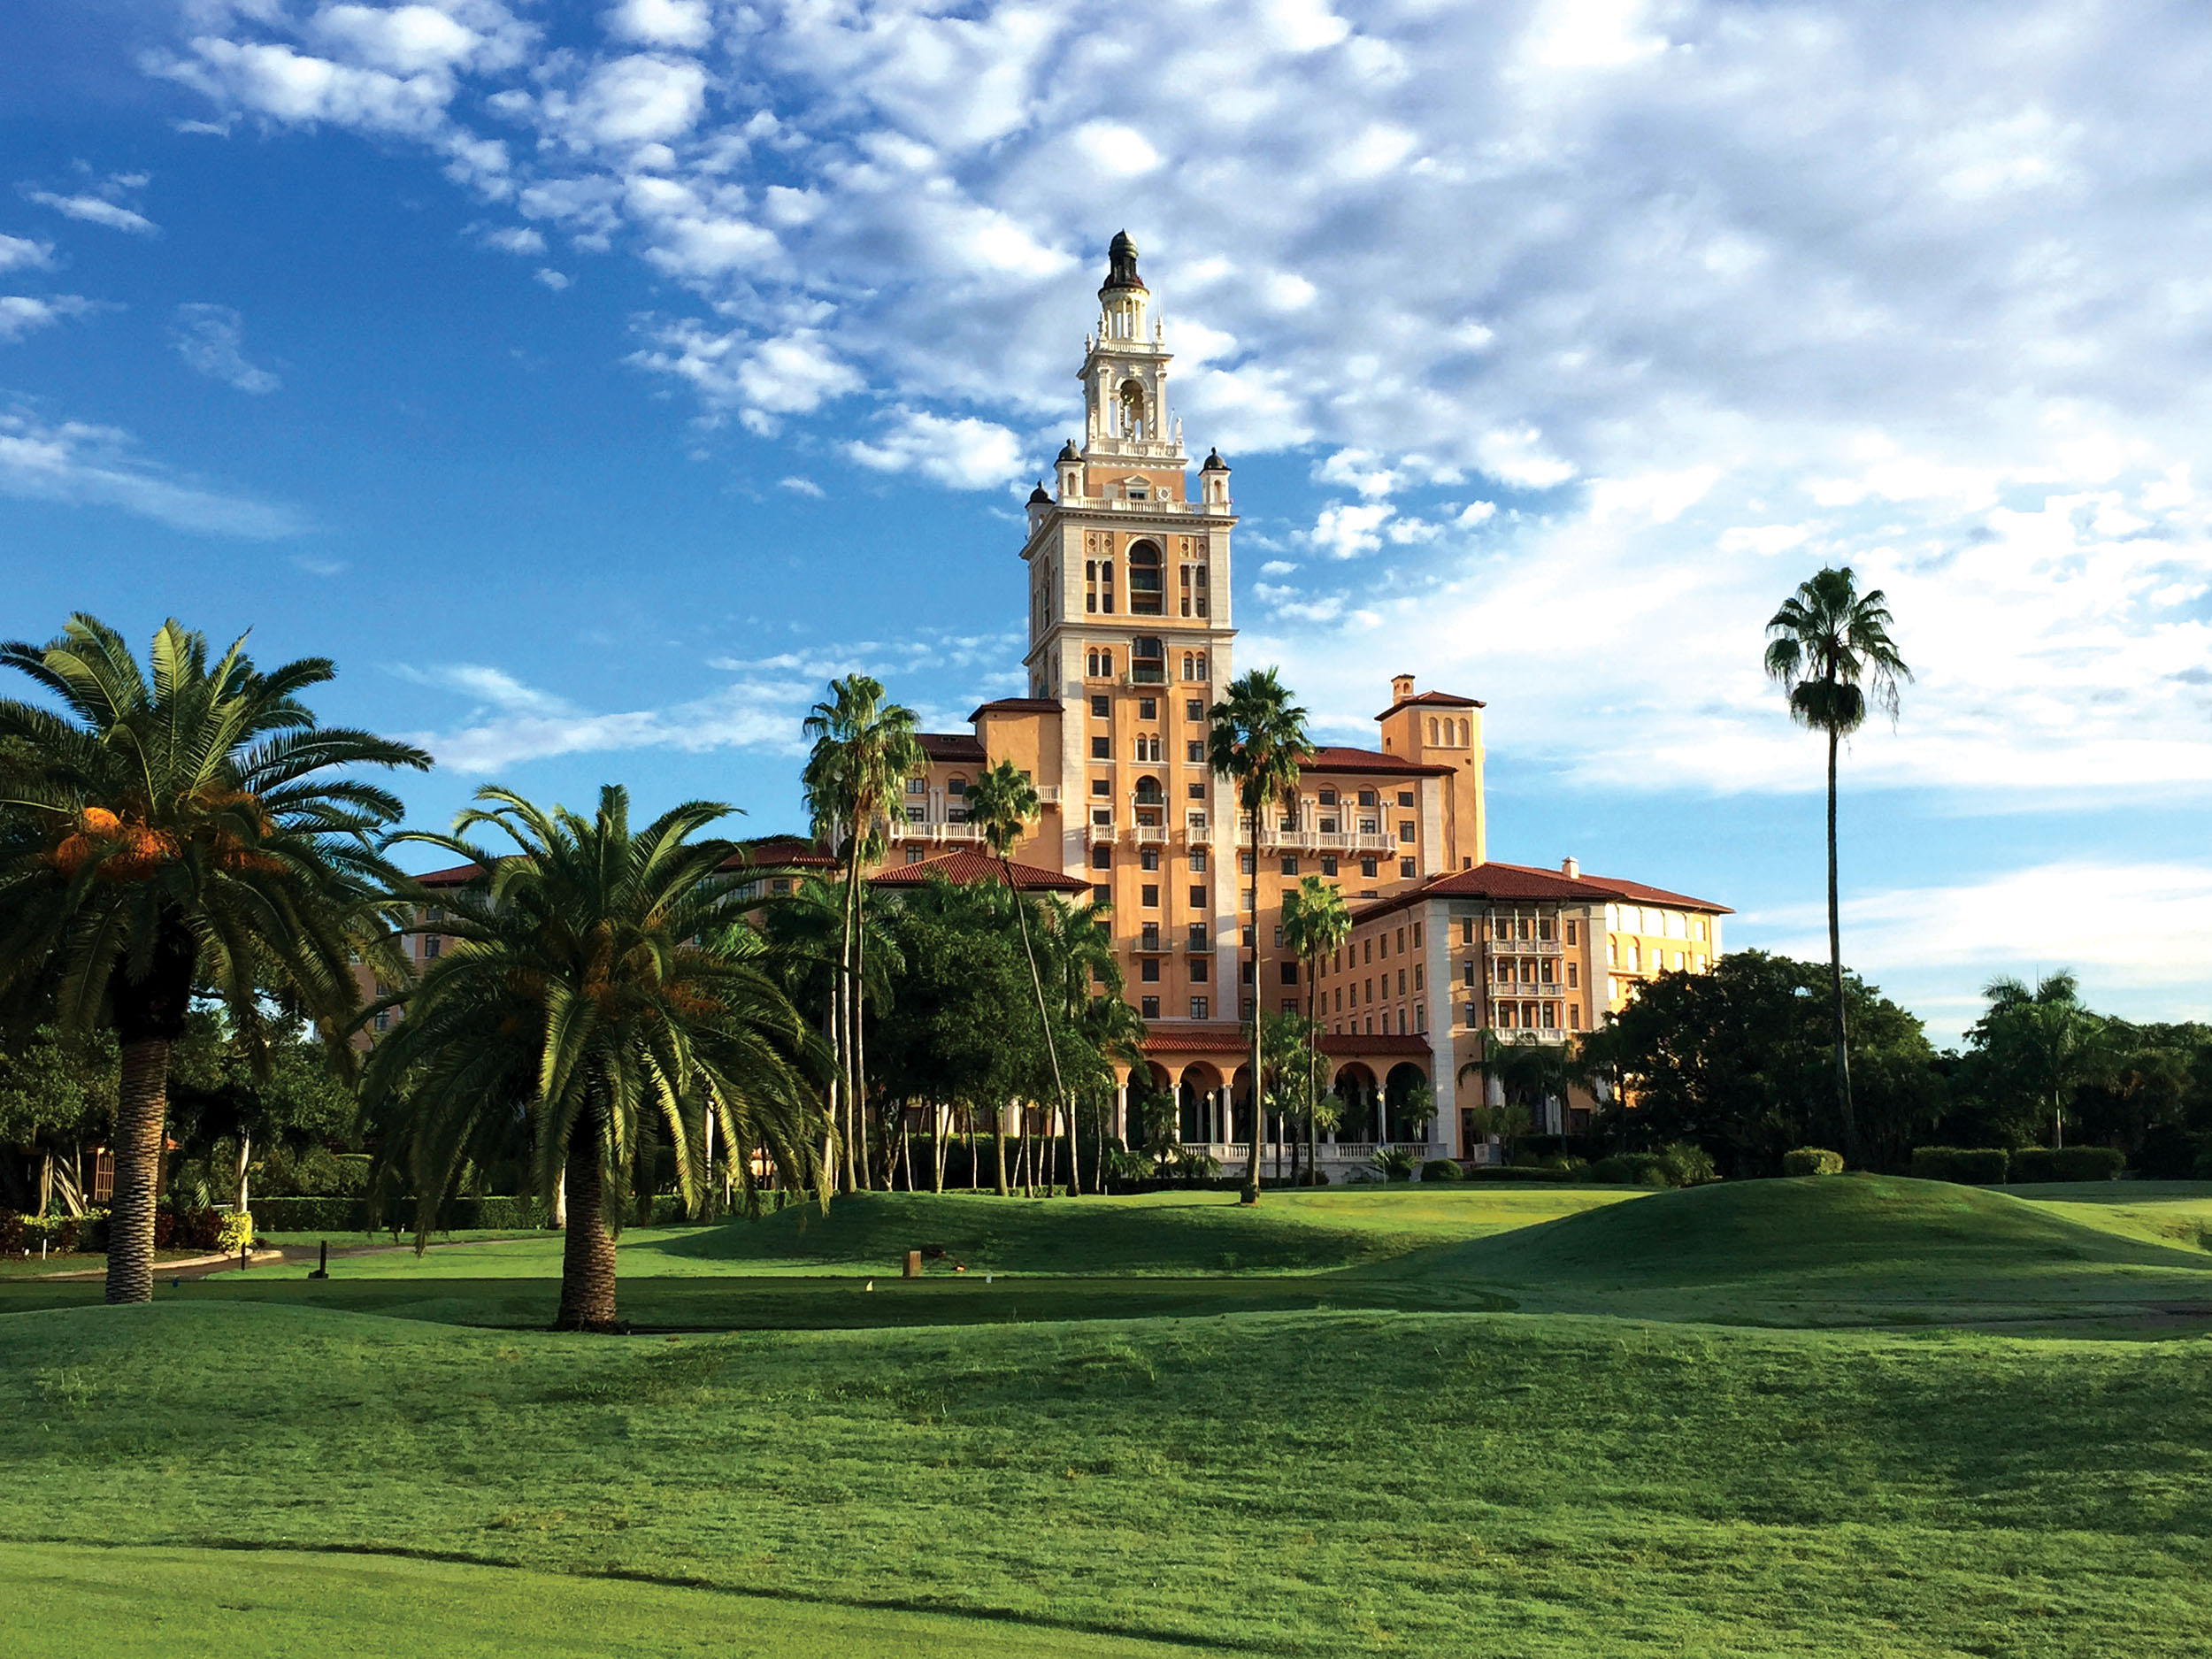 Ranked Top 4 Resorts In the State of Florida by Travel + Leisure Top Hotels Award 2017